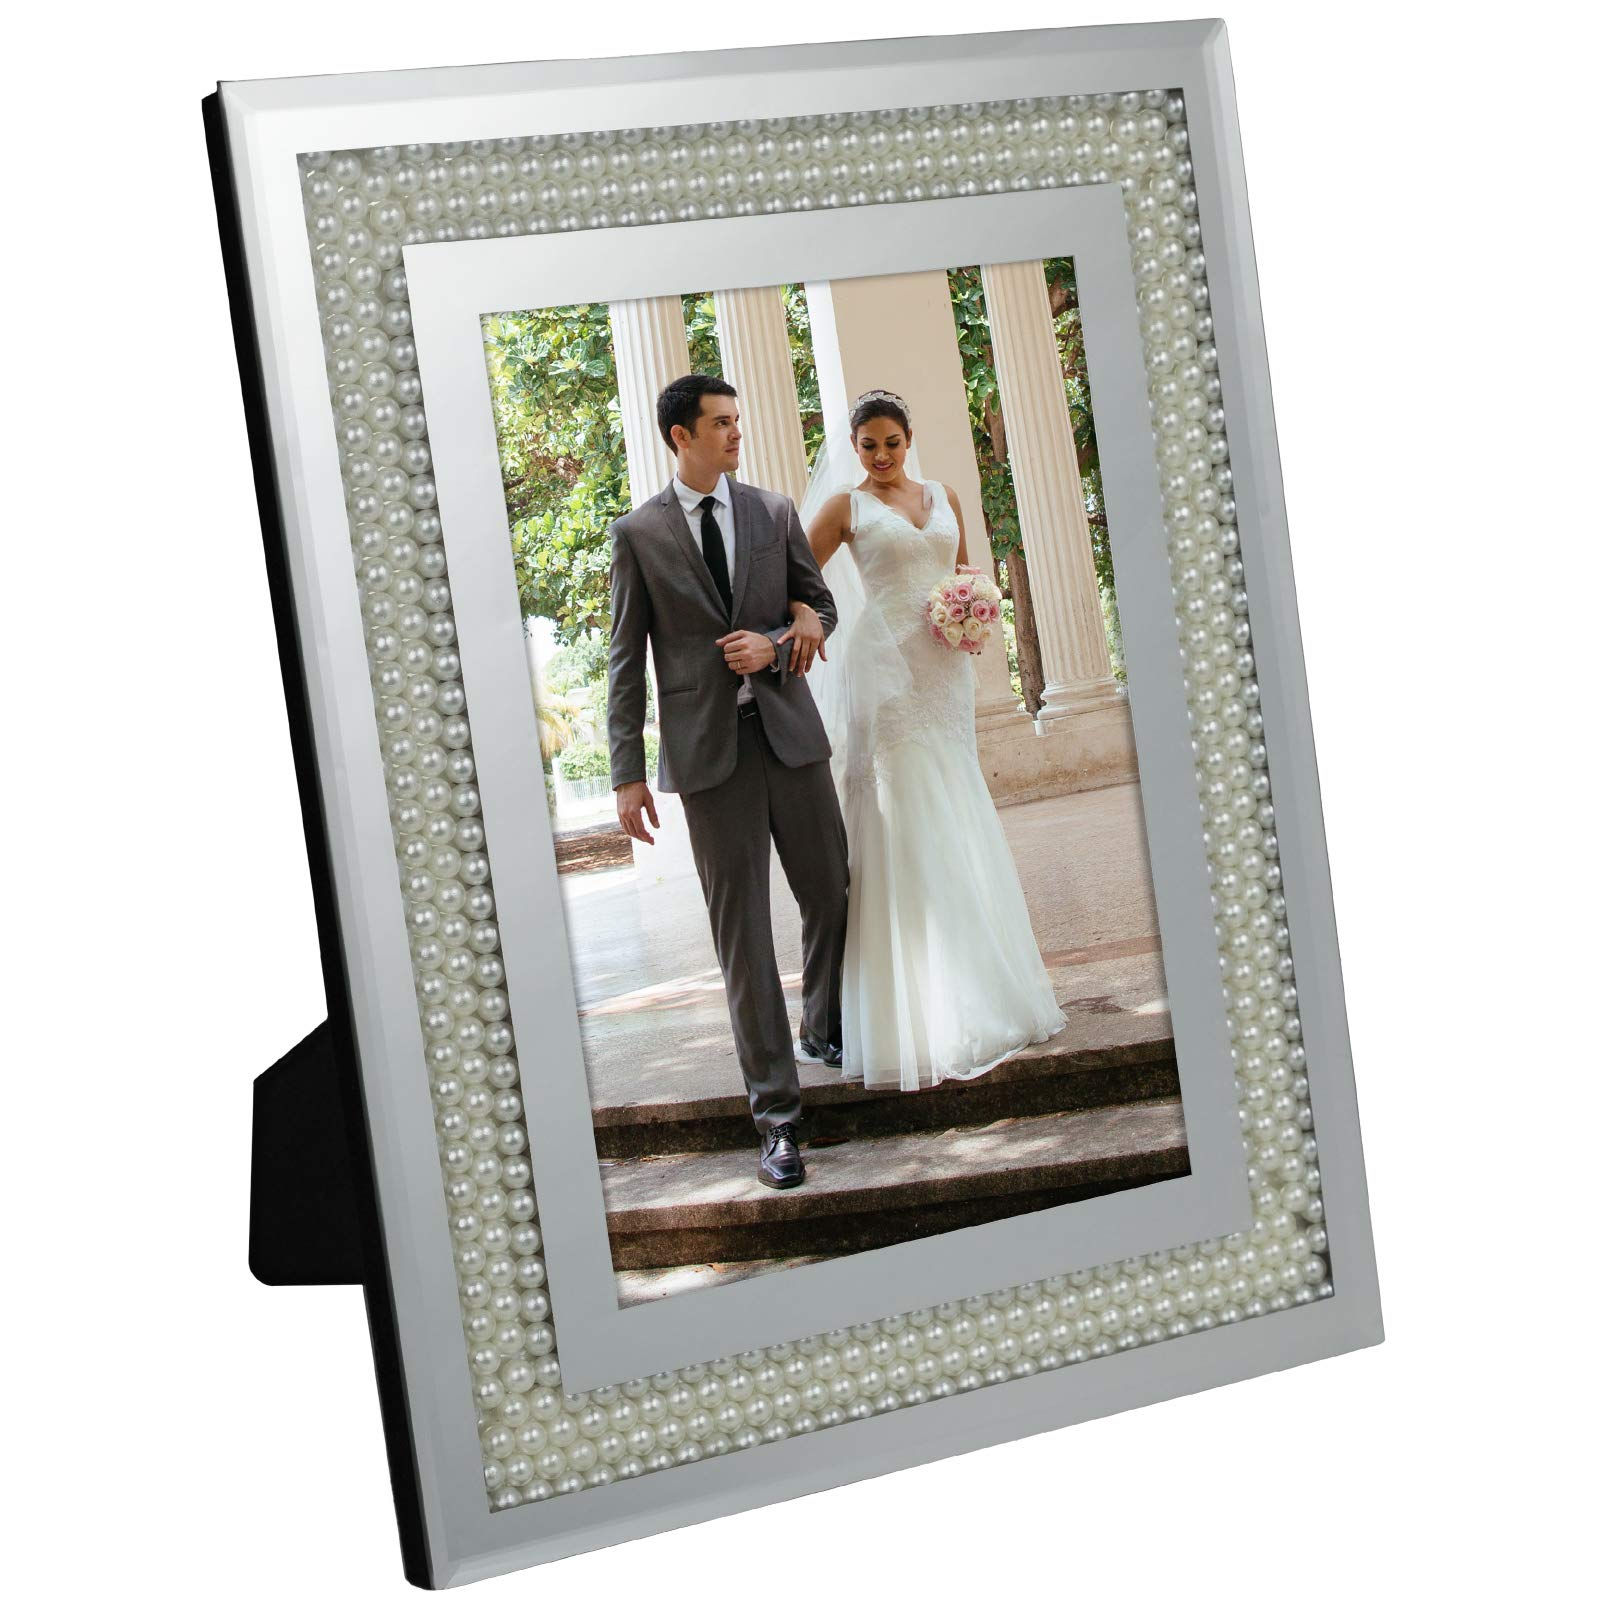 EUROLINE35 Picture Frame 70x81 or 81x70 cm with Entspiegeltem Acrylic Glass